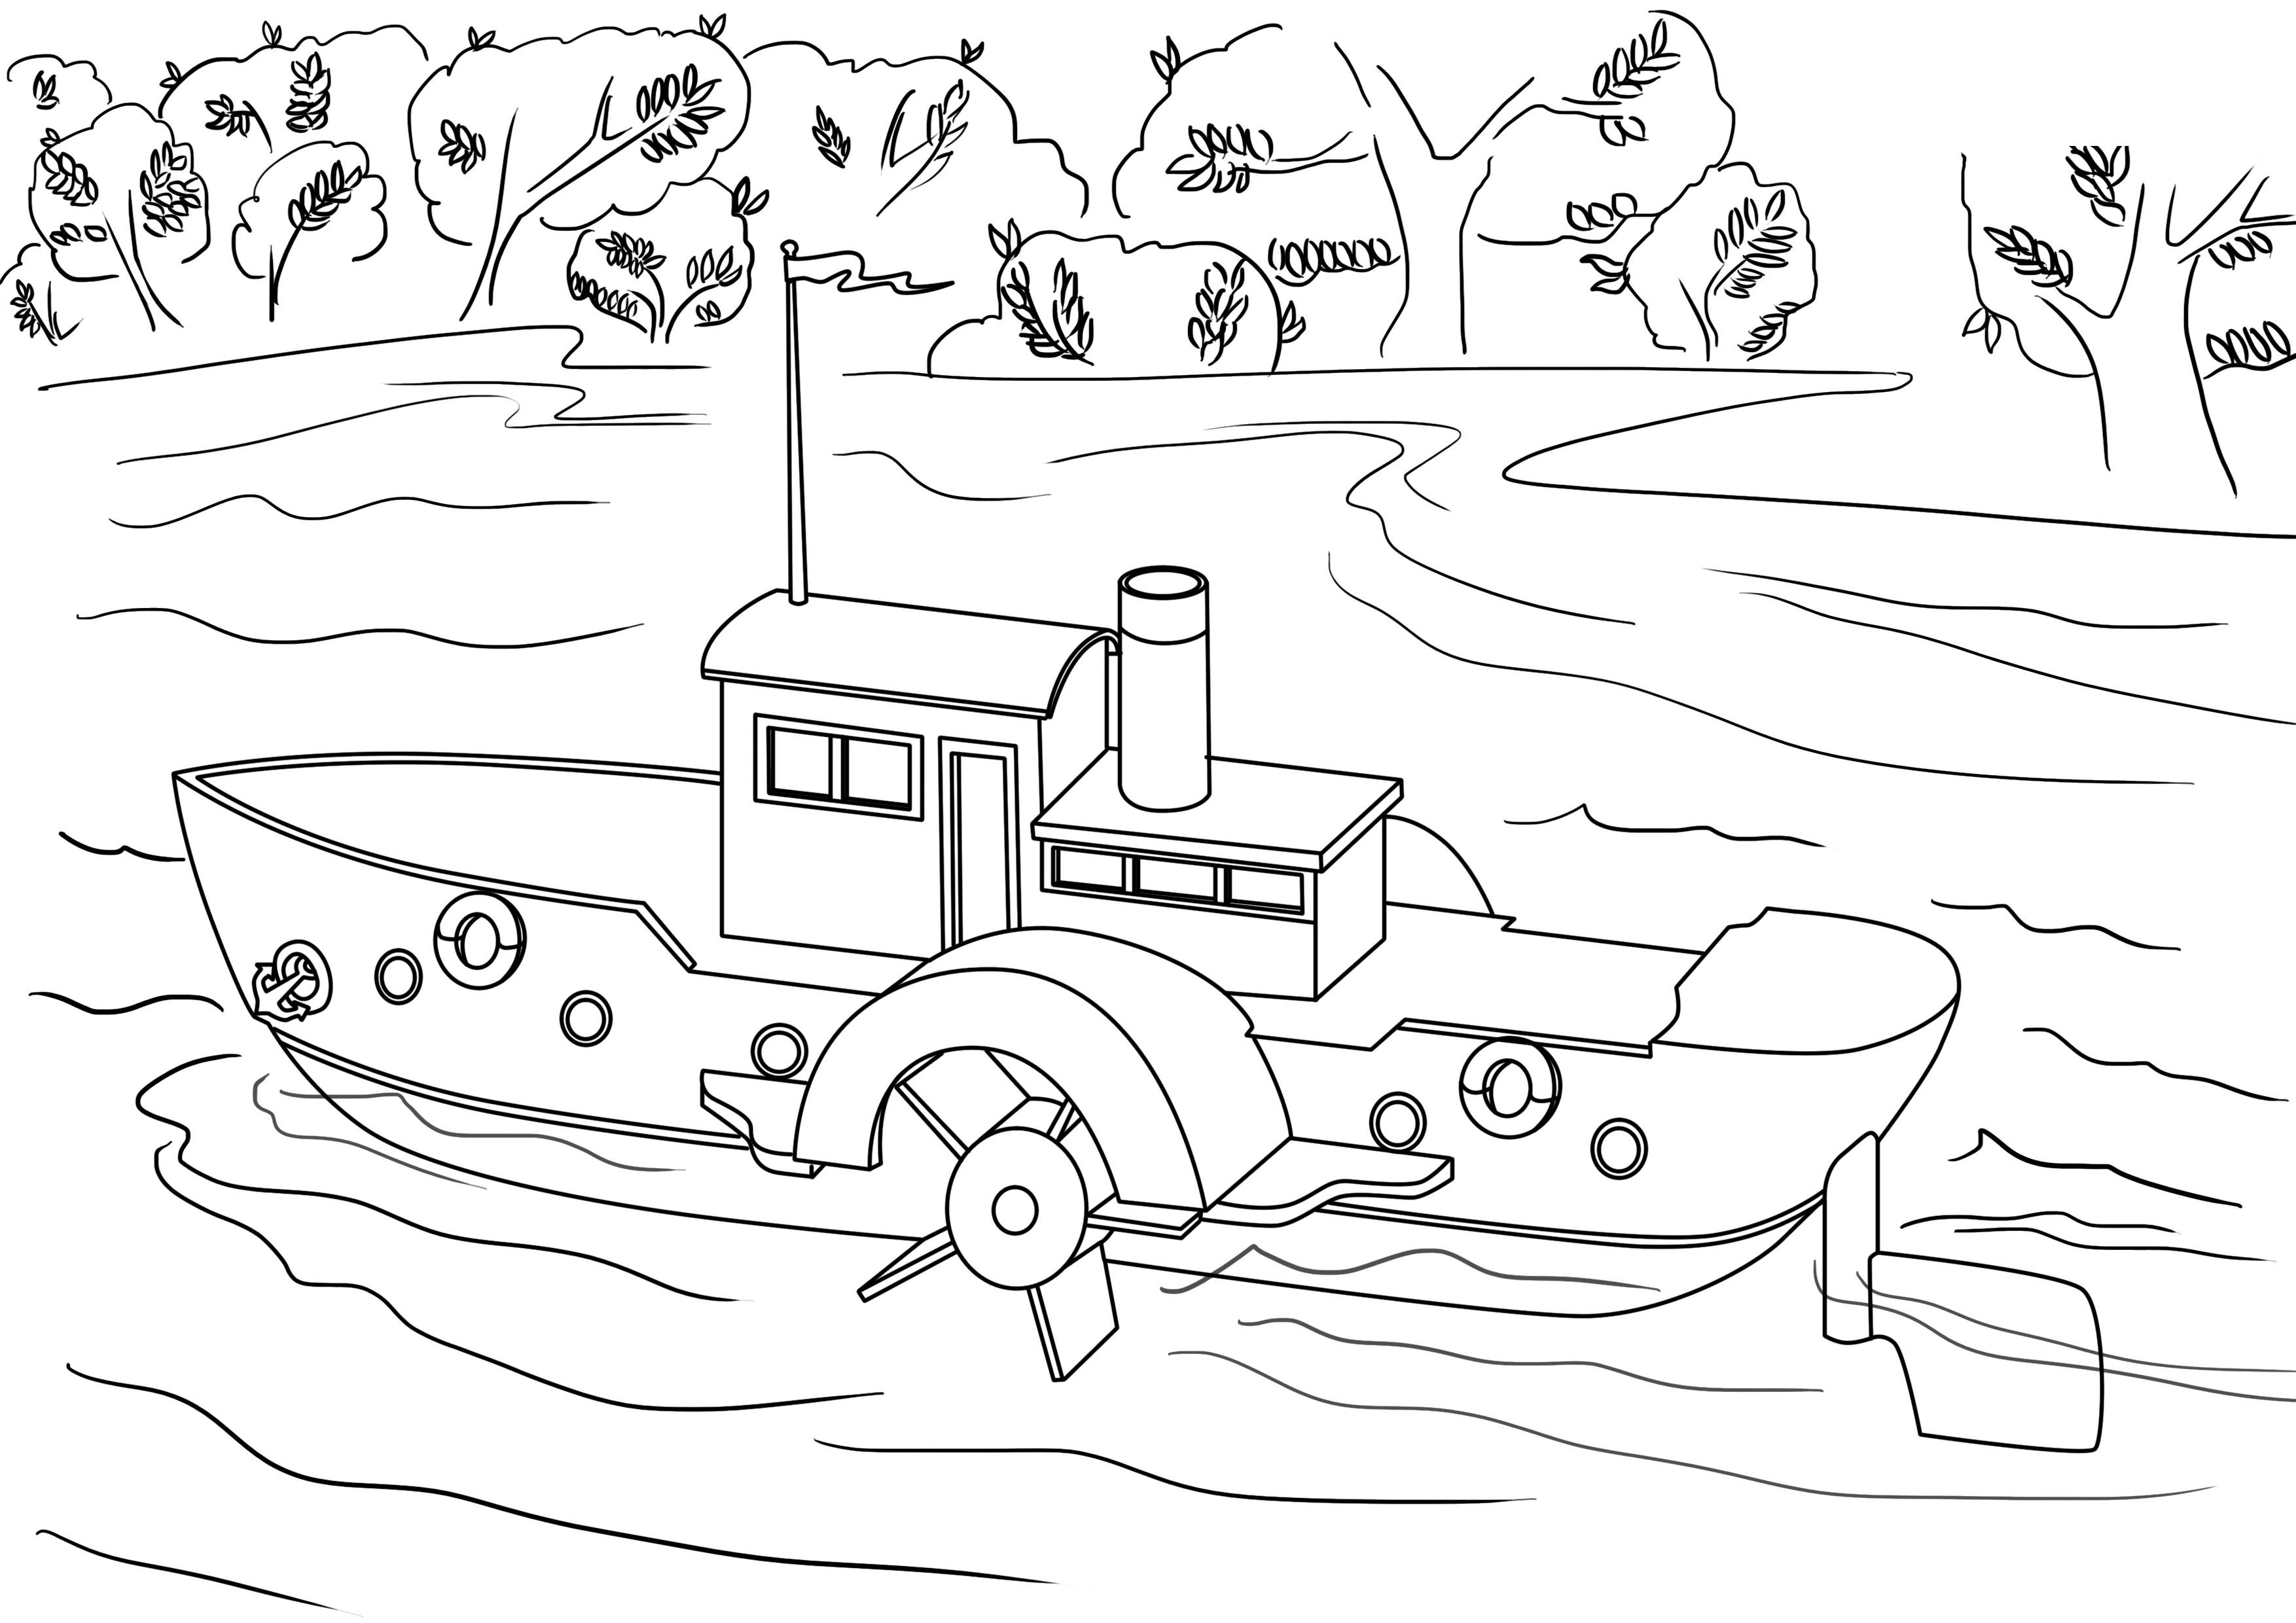 river coloring pages river coloring pages to download and print for free coloring pages river